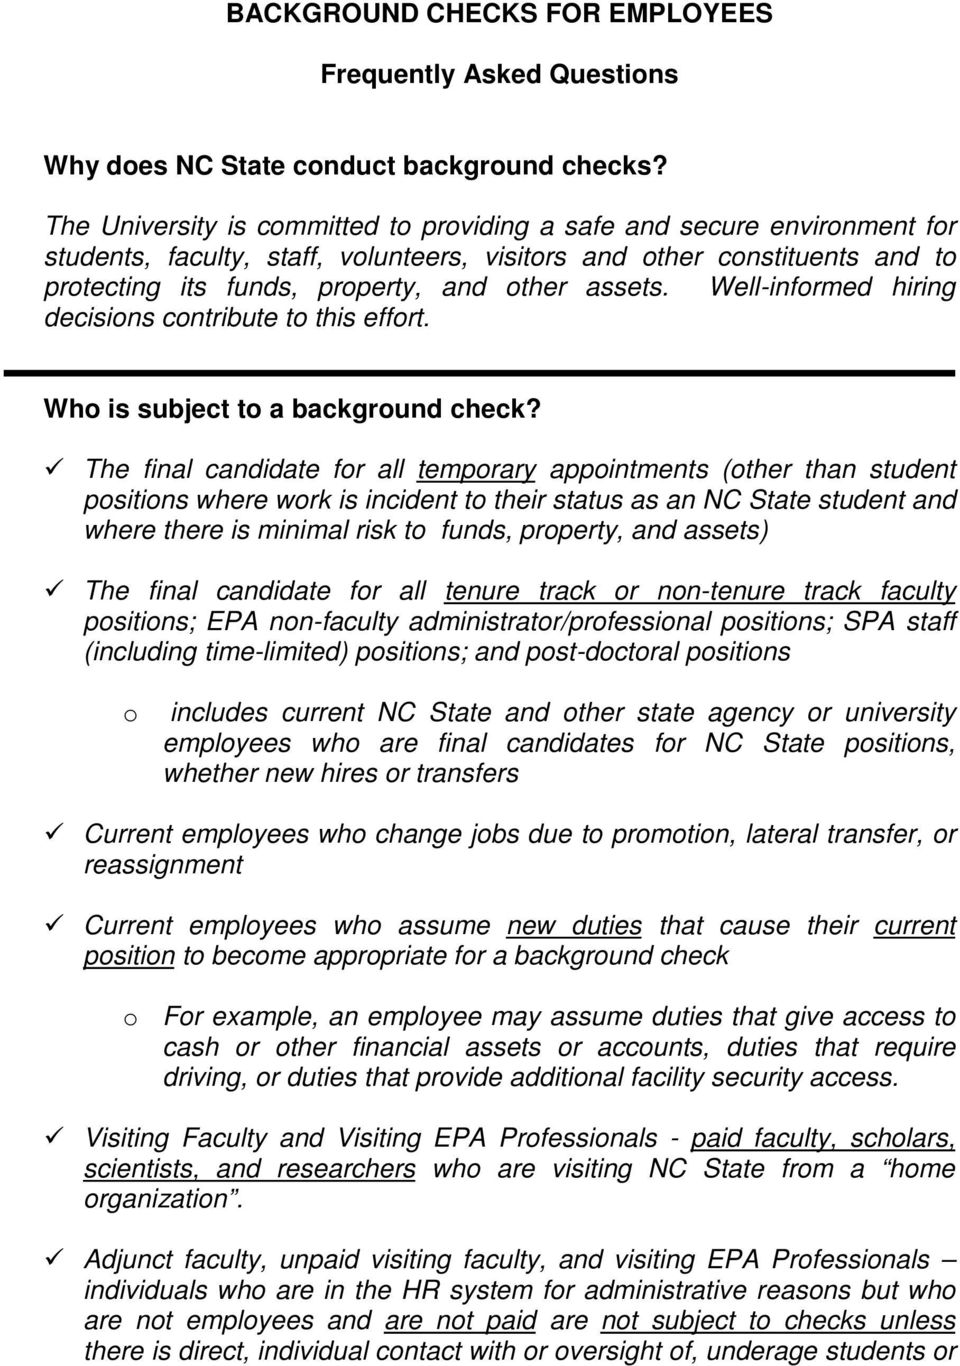 assets. Well-informed hiring decisions contribute to this effort. Who is subject to a background check?